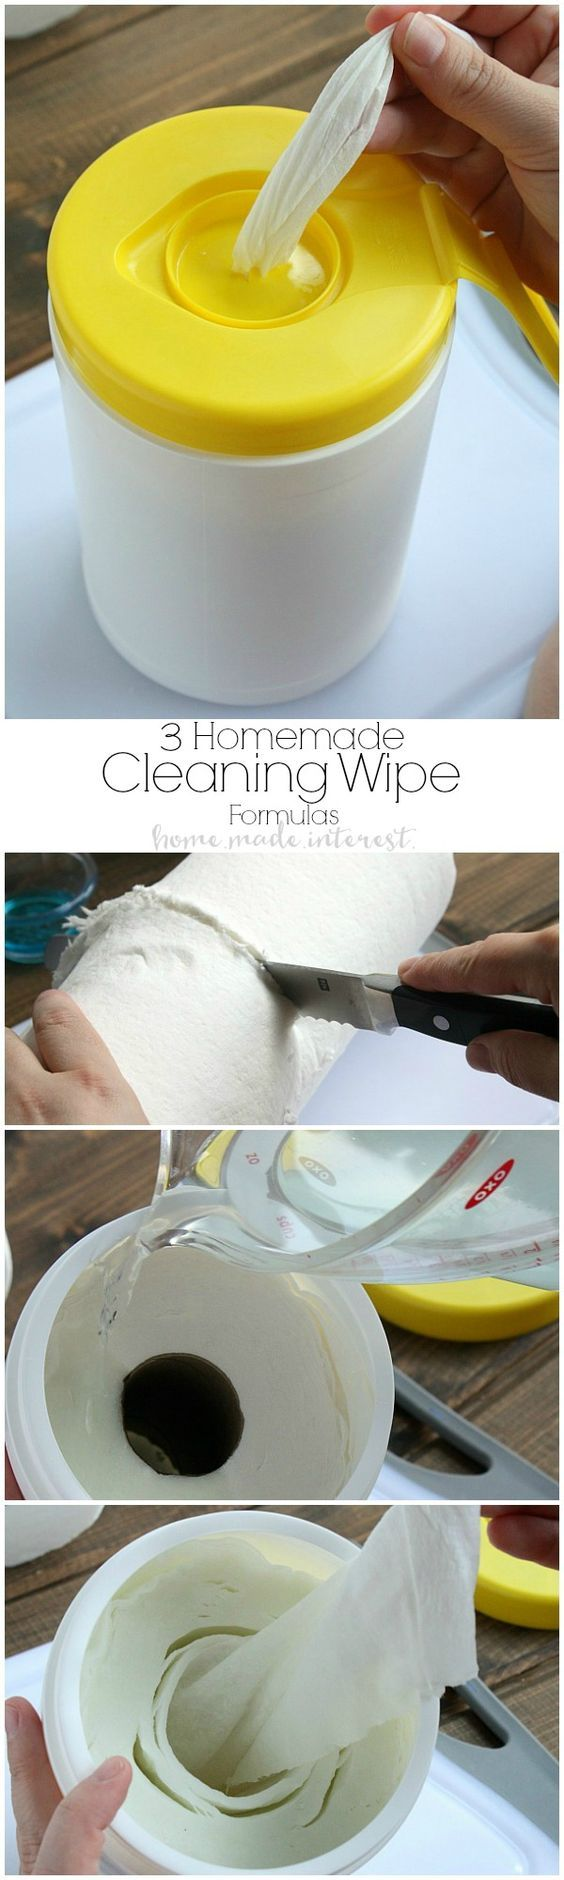 A tutorial on how to make homemade cleaning wipes in three different formulas, homemade wipes for glass, bleach wipes, and general cleaning wipes. A great way to save money and some inspiration to start your Spring cleaning! #UnleashClean #ad